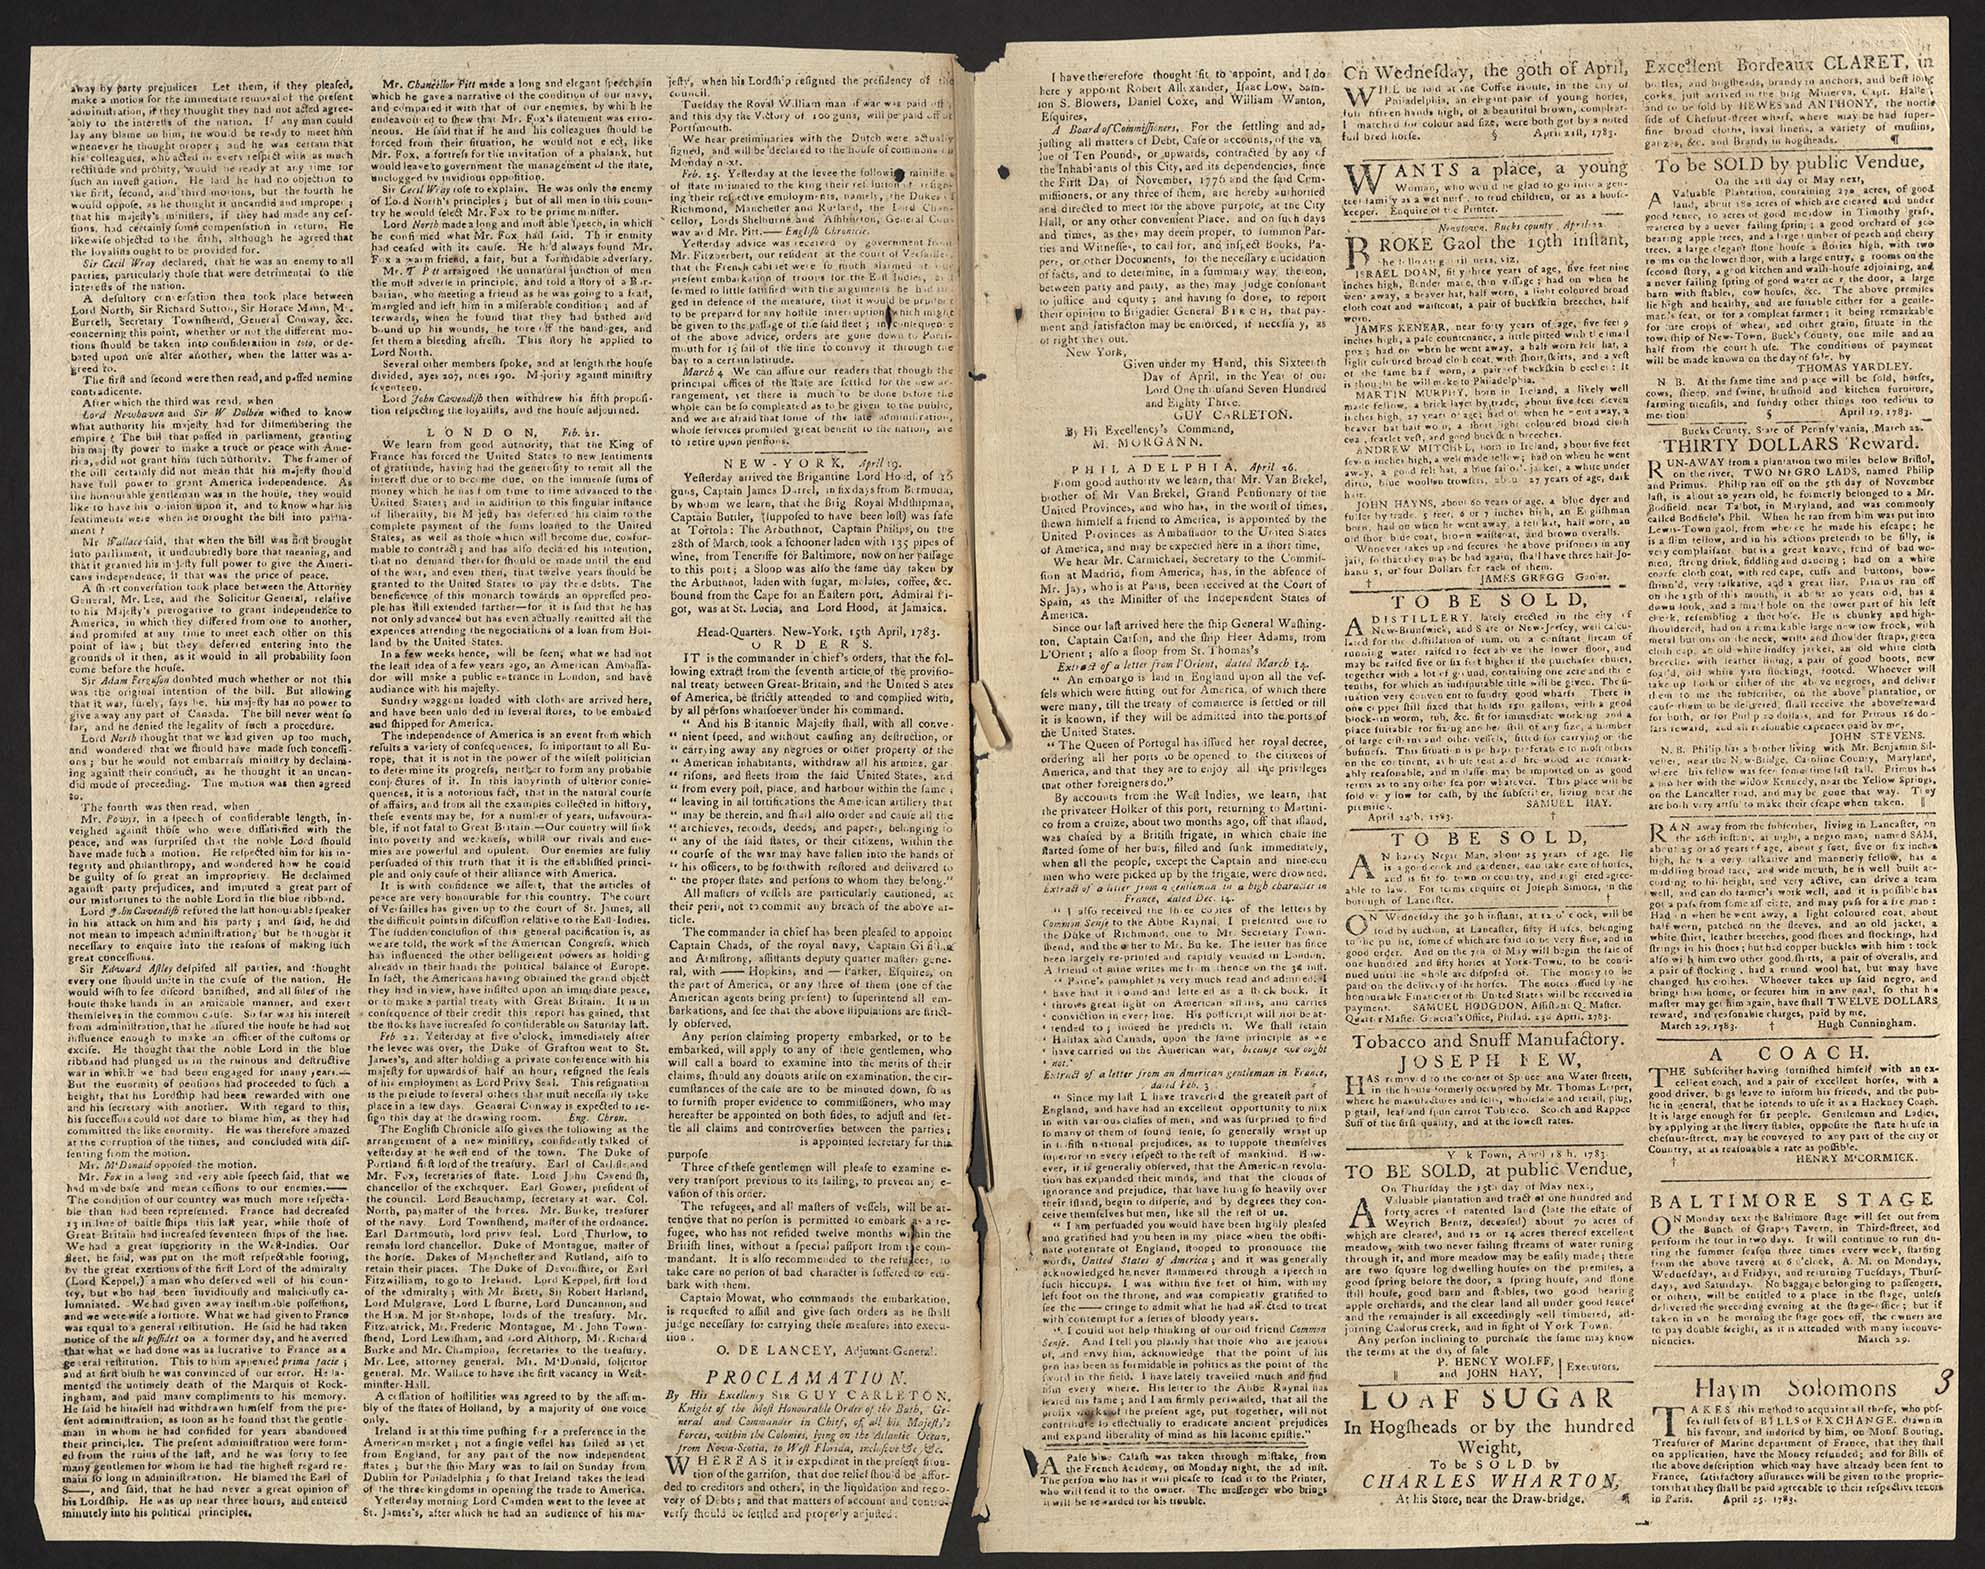 The Pennsylvania Journal and Weekly Advertiser,1783